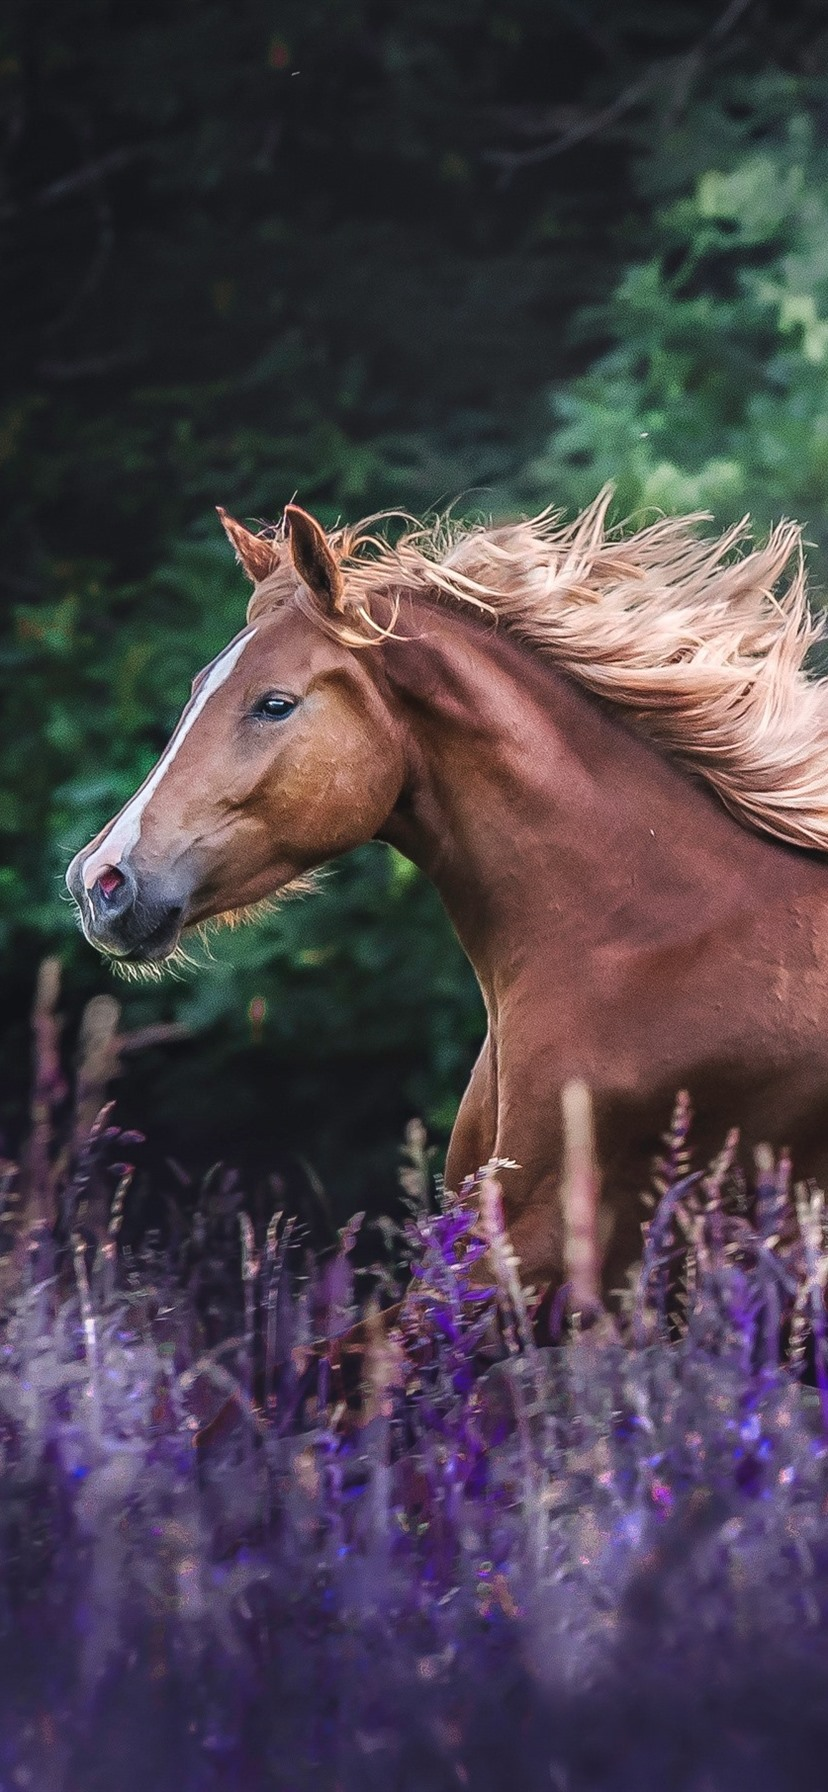 Brown Horse Running Lavender Flowers 828x1792 Iphone 11 Xr Wallpaper Background Picture Image